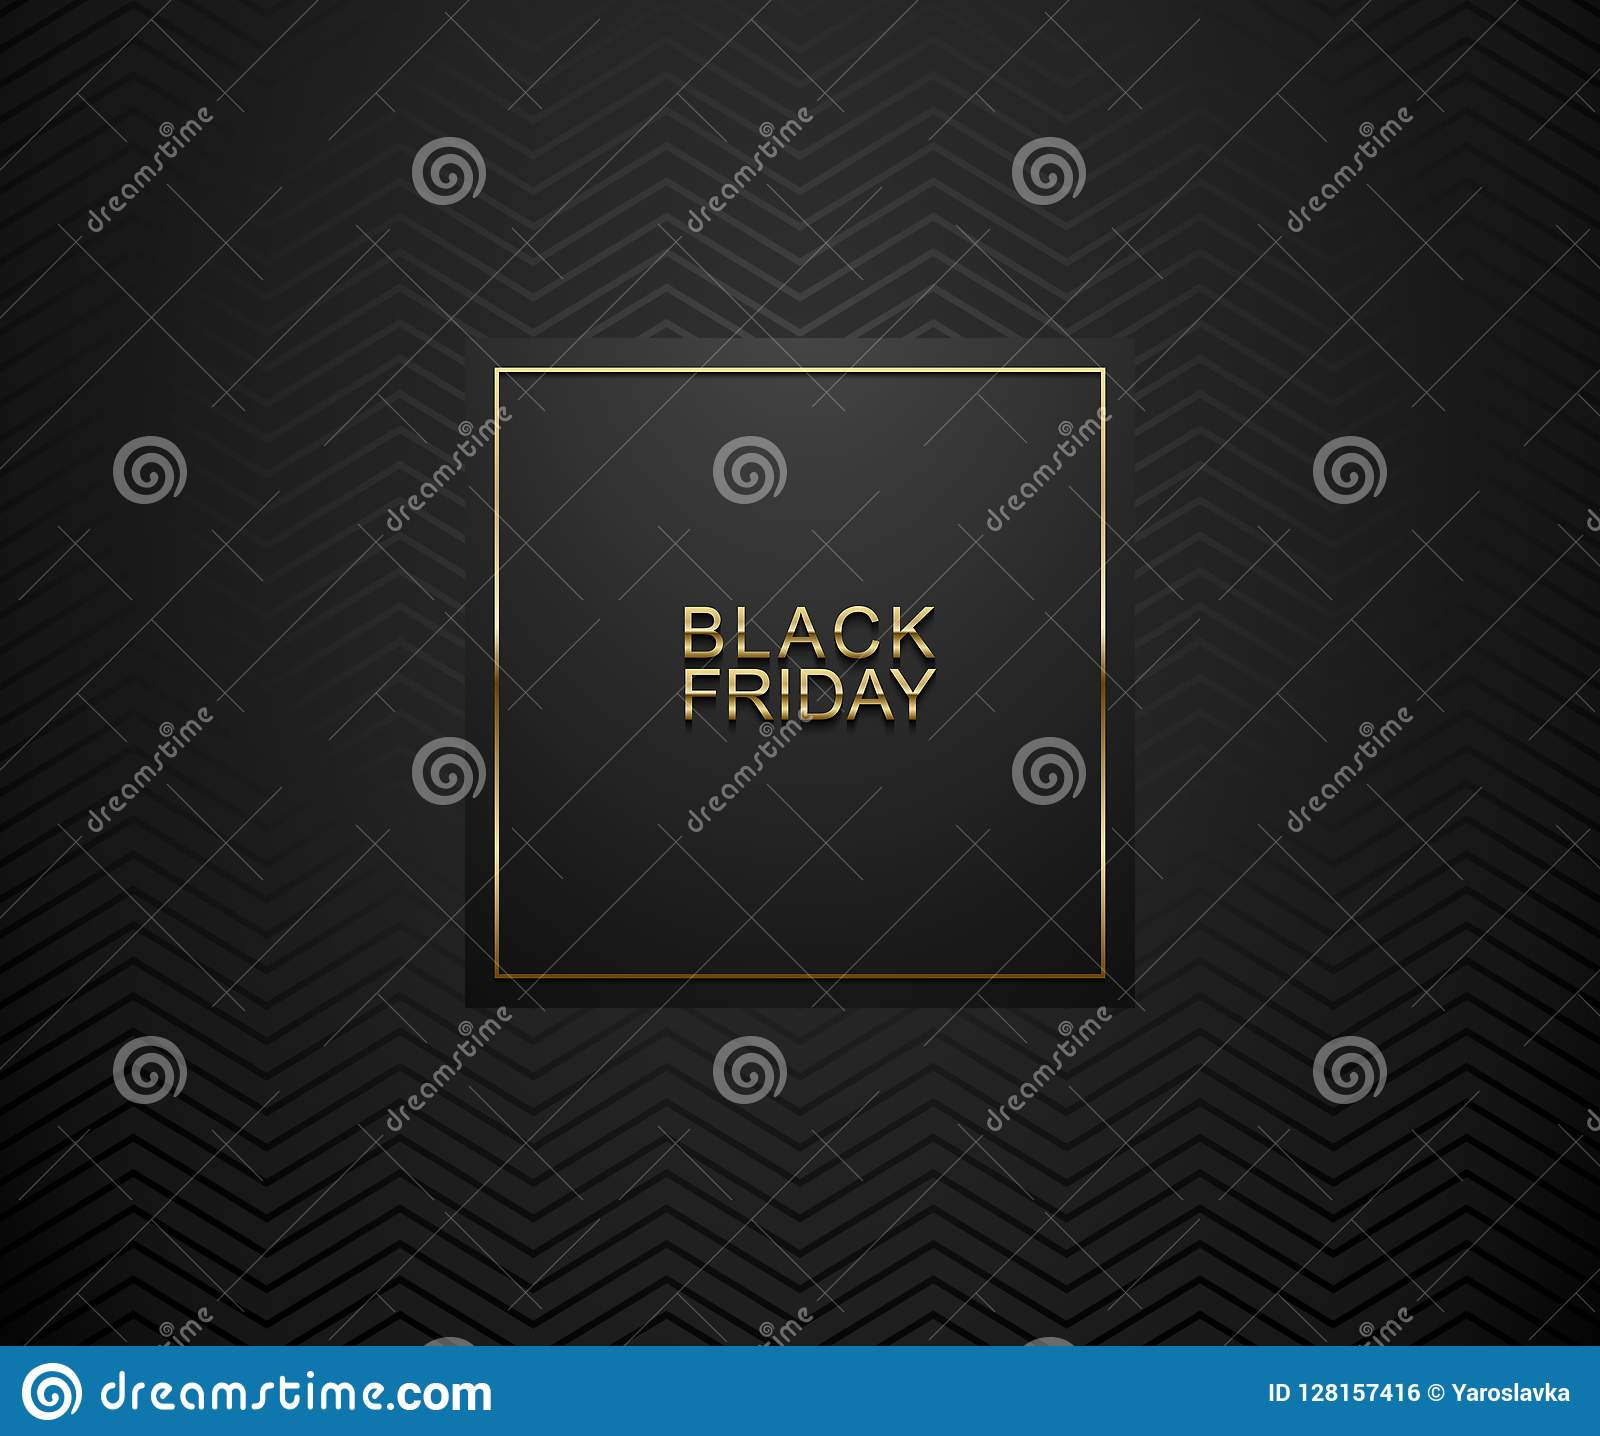 Black Friday luxury banner. Golden text on black square label frame. Dark geometric zigzag pattern background. Vector illustration